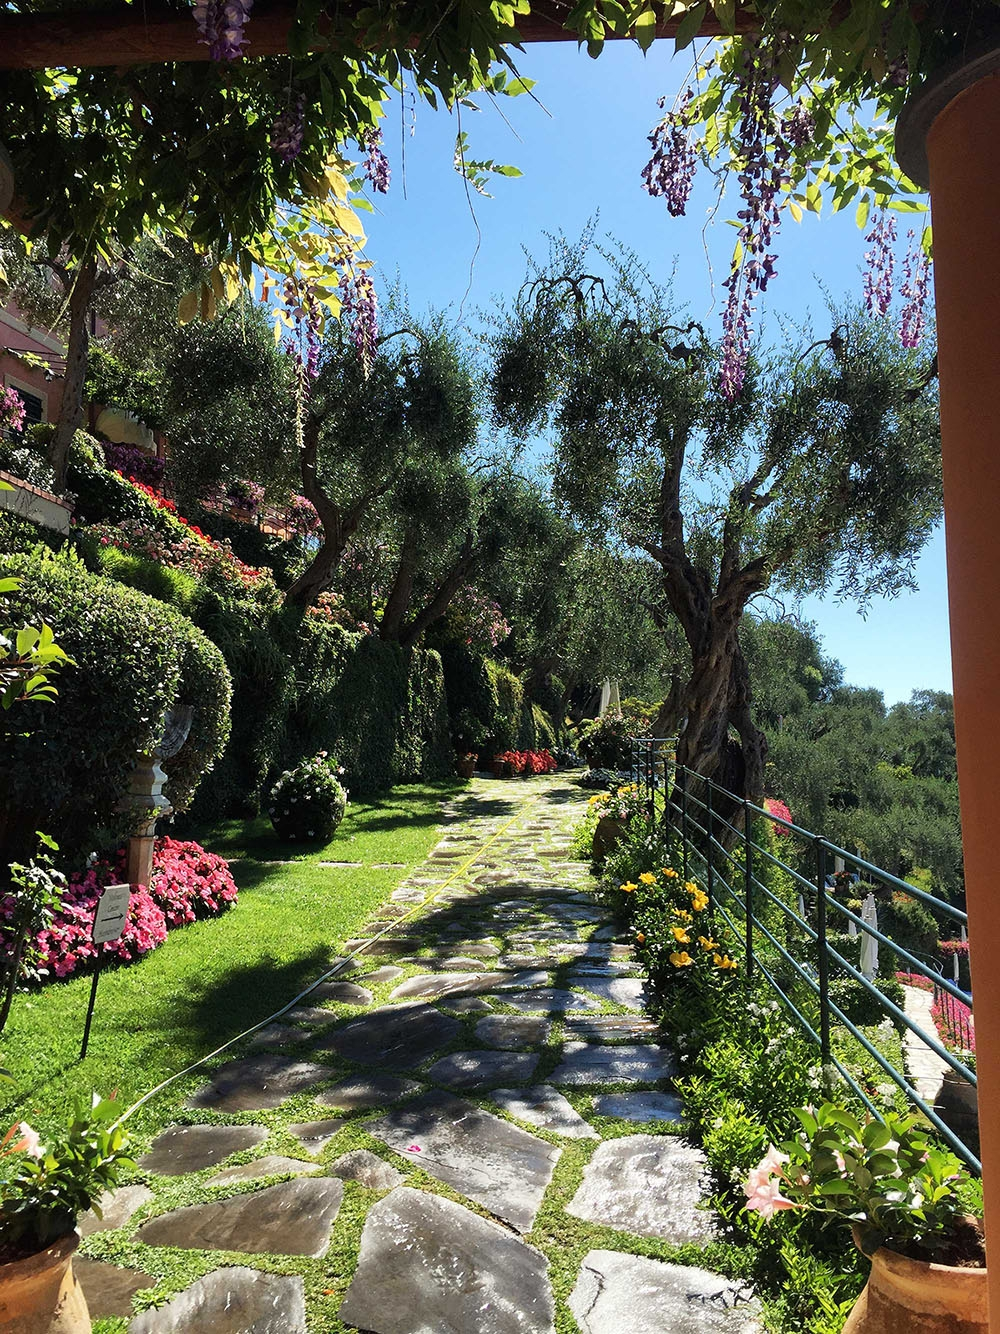 A stone pathway leads through the lush green gardens at Hotel Splendido